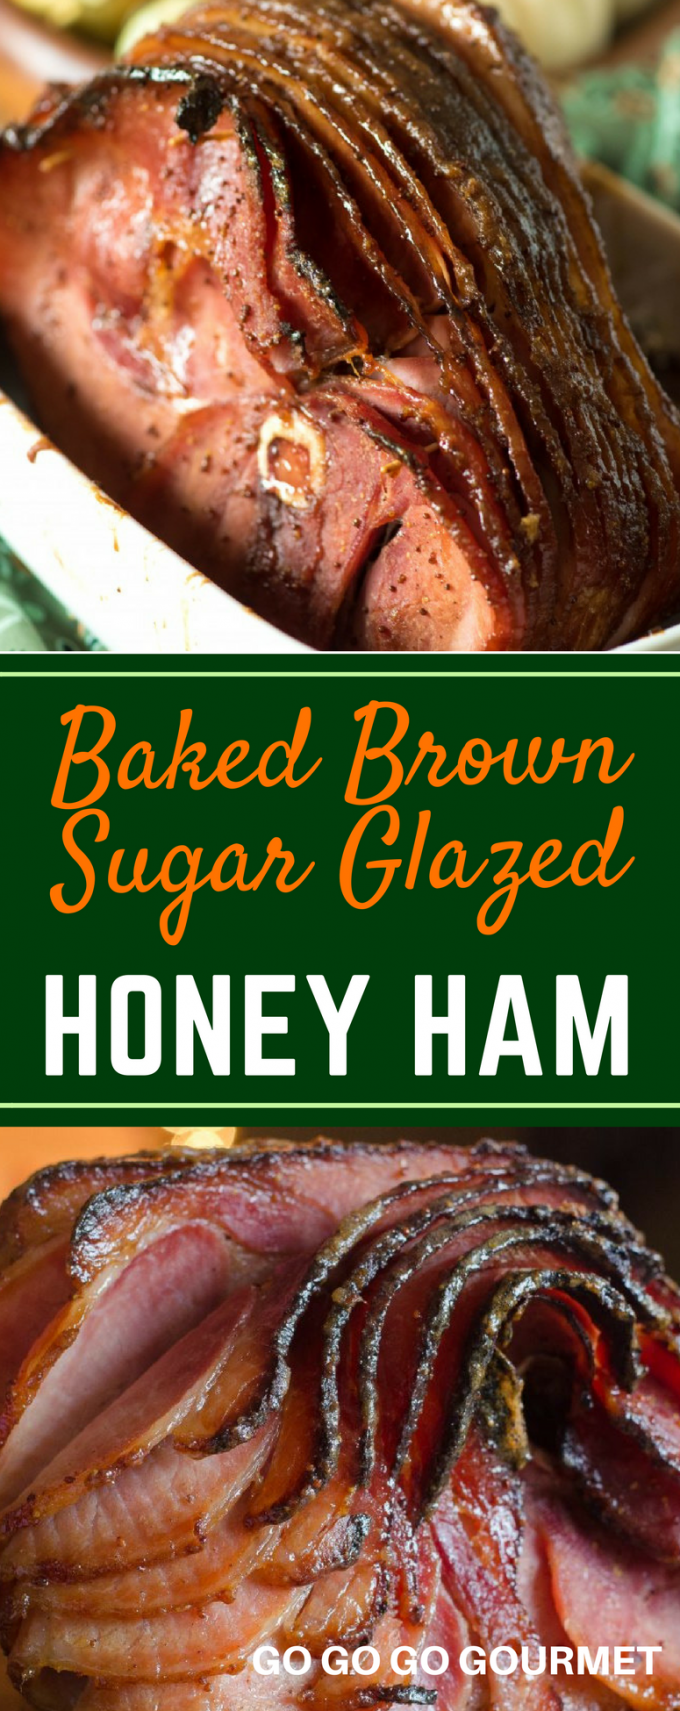 No need to get out the crockpot, this Honey Ham is baked right in the oven! This easy ham makes cooking Thanksgiving dinner a breeze! You'll never need to go looking for ham recipes again. The brown sugar adds just the right amount of sweet, and you could even add pineapple to the glaze! #gogogogourmet #thanksgivingdinnerrecipes #easythanksgivingrecipes #thanksgivinghamrecipes #honeybakedham via @gogogogourmet